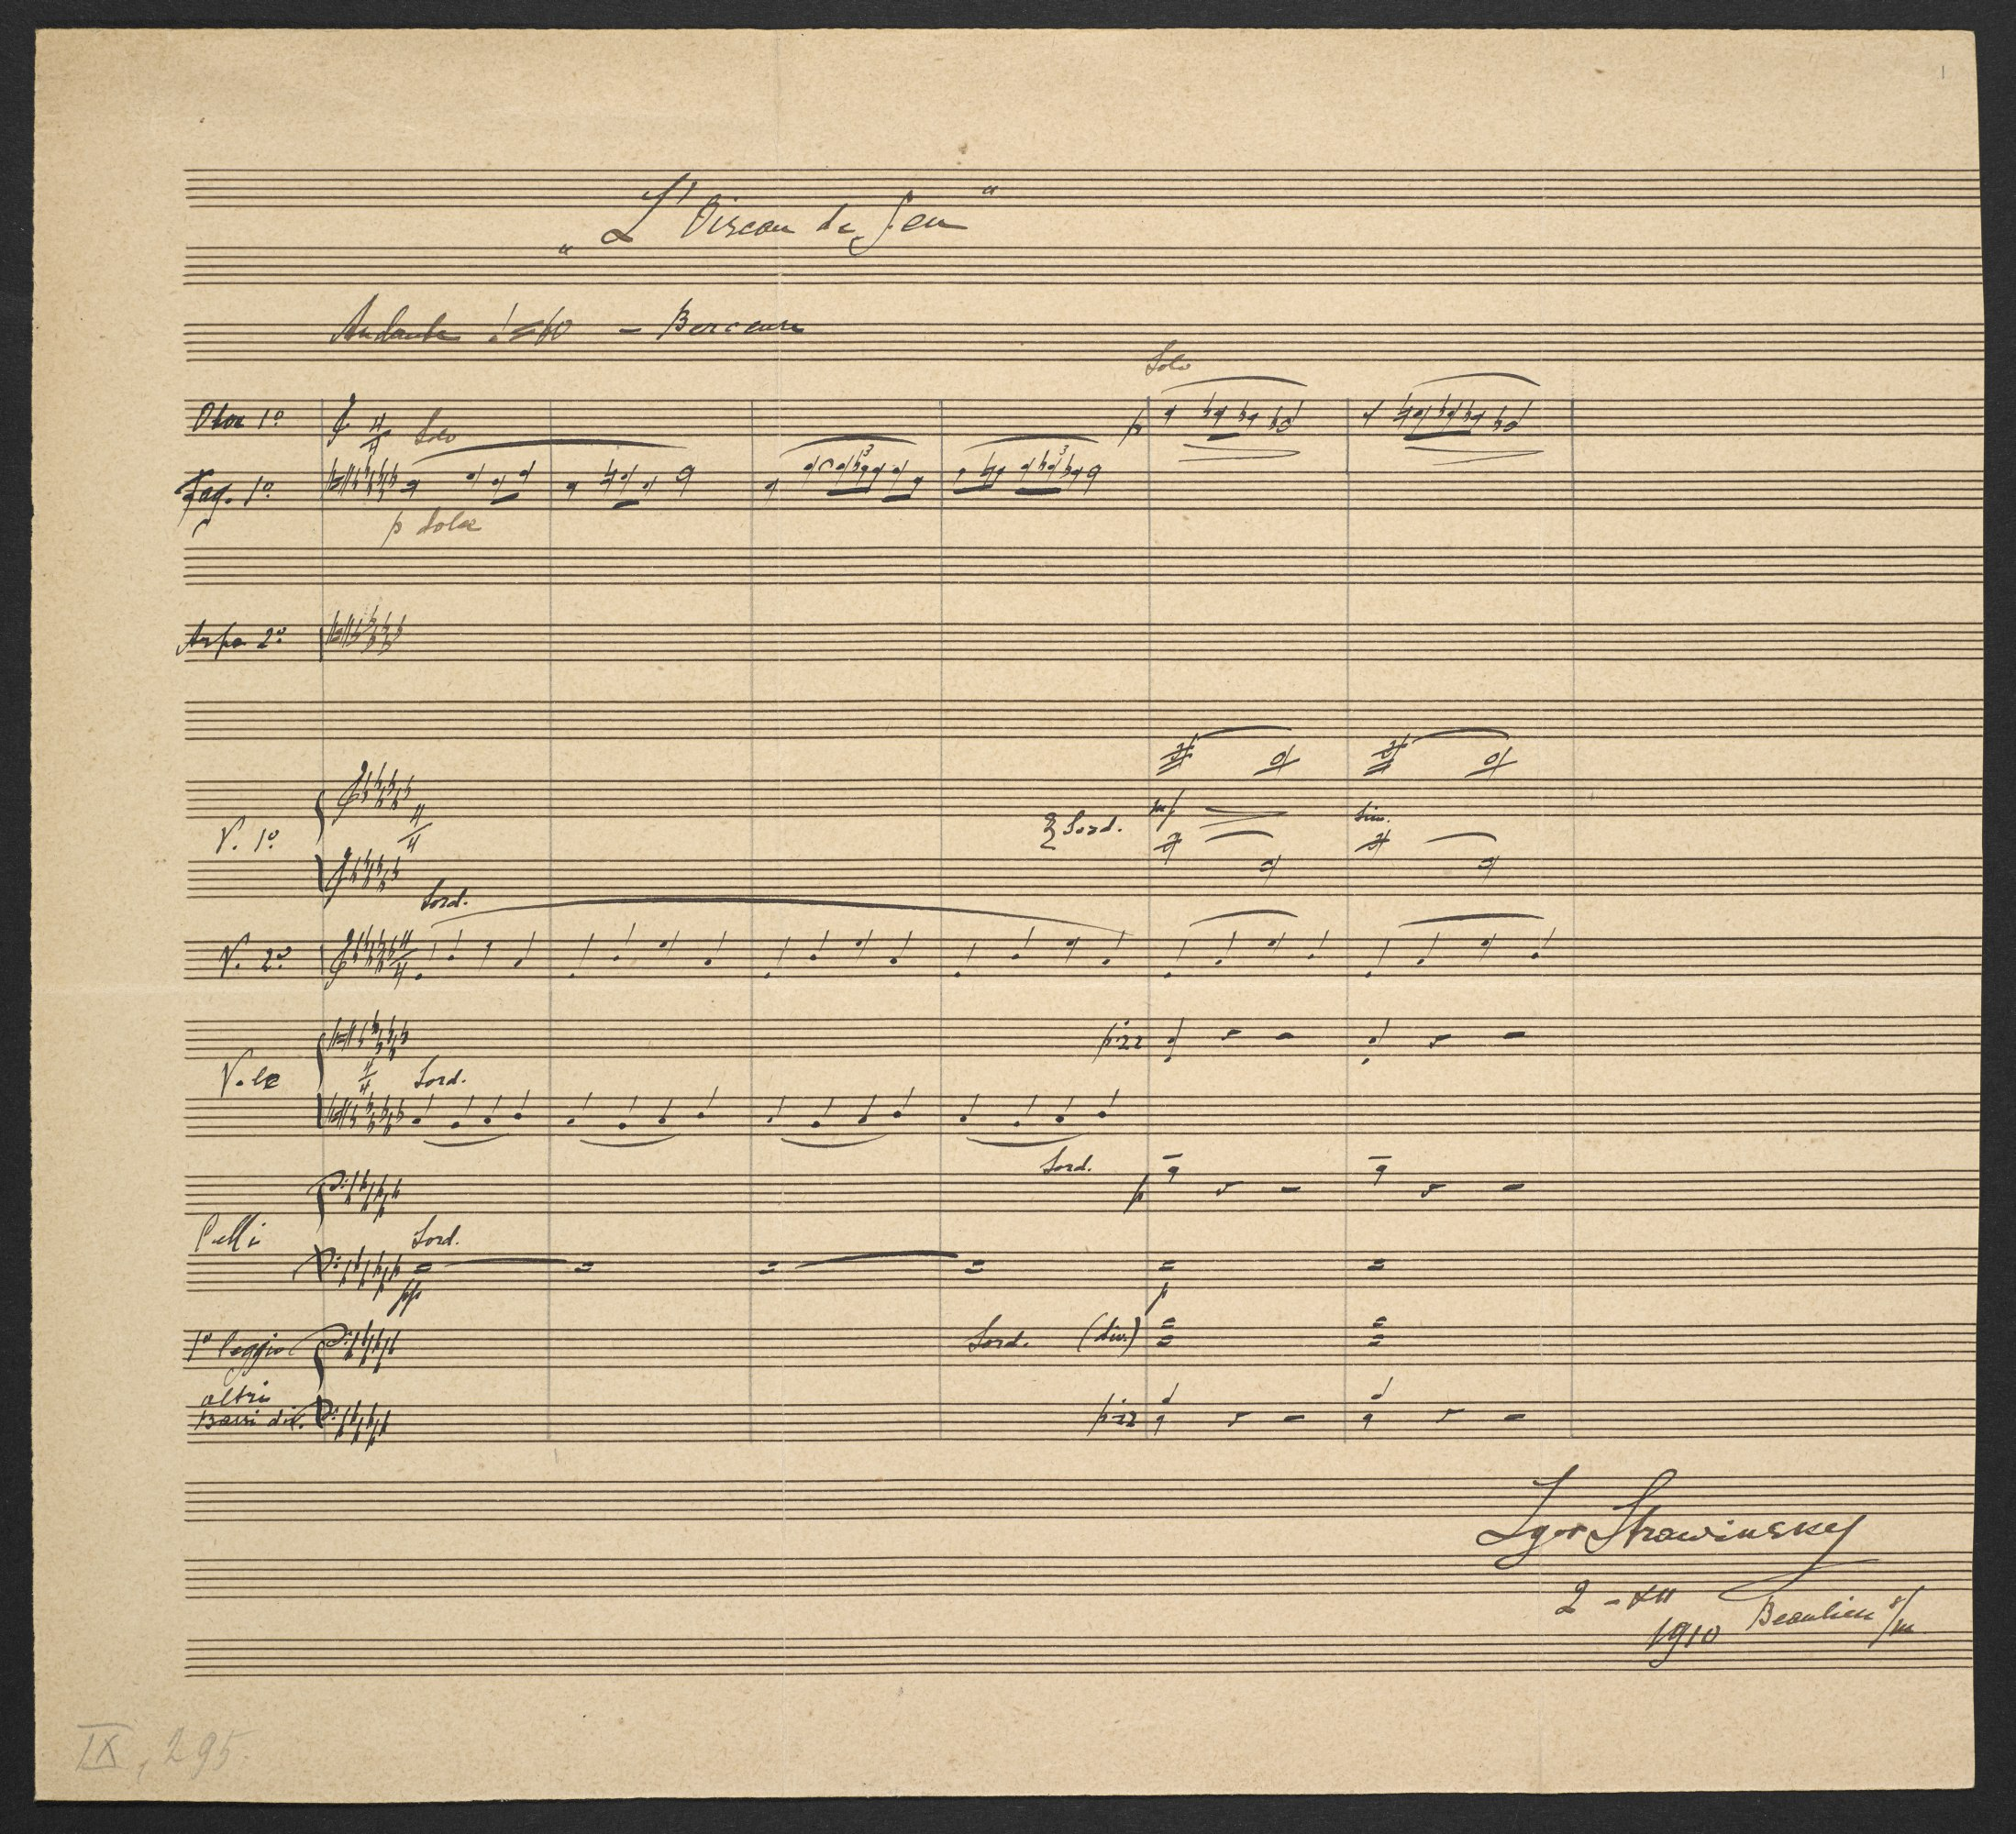 Igor Stravinsky: 'Berceuse' from the ballet The Firebird, Zweig MS 93